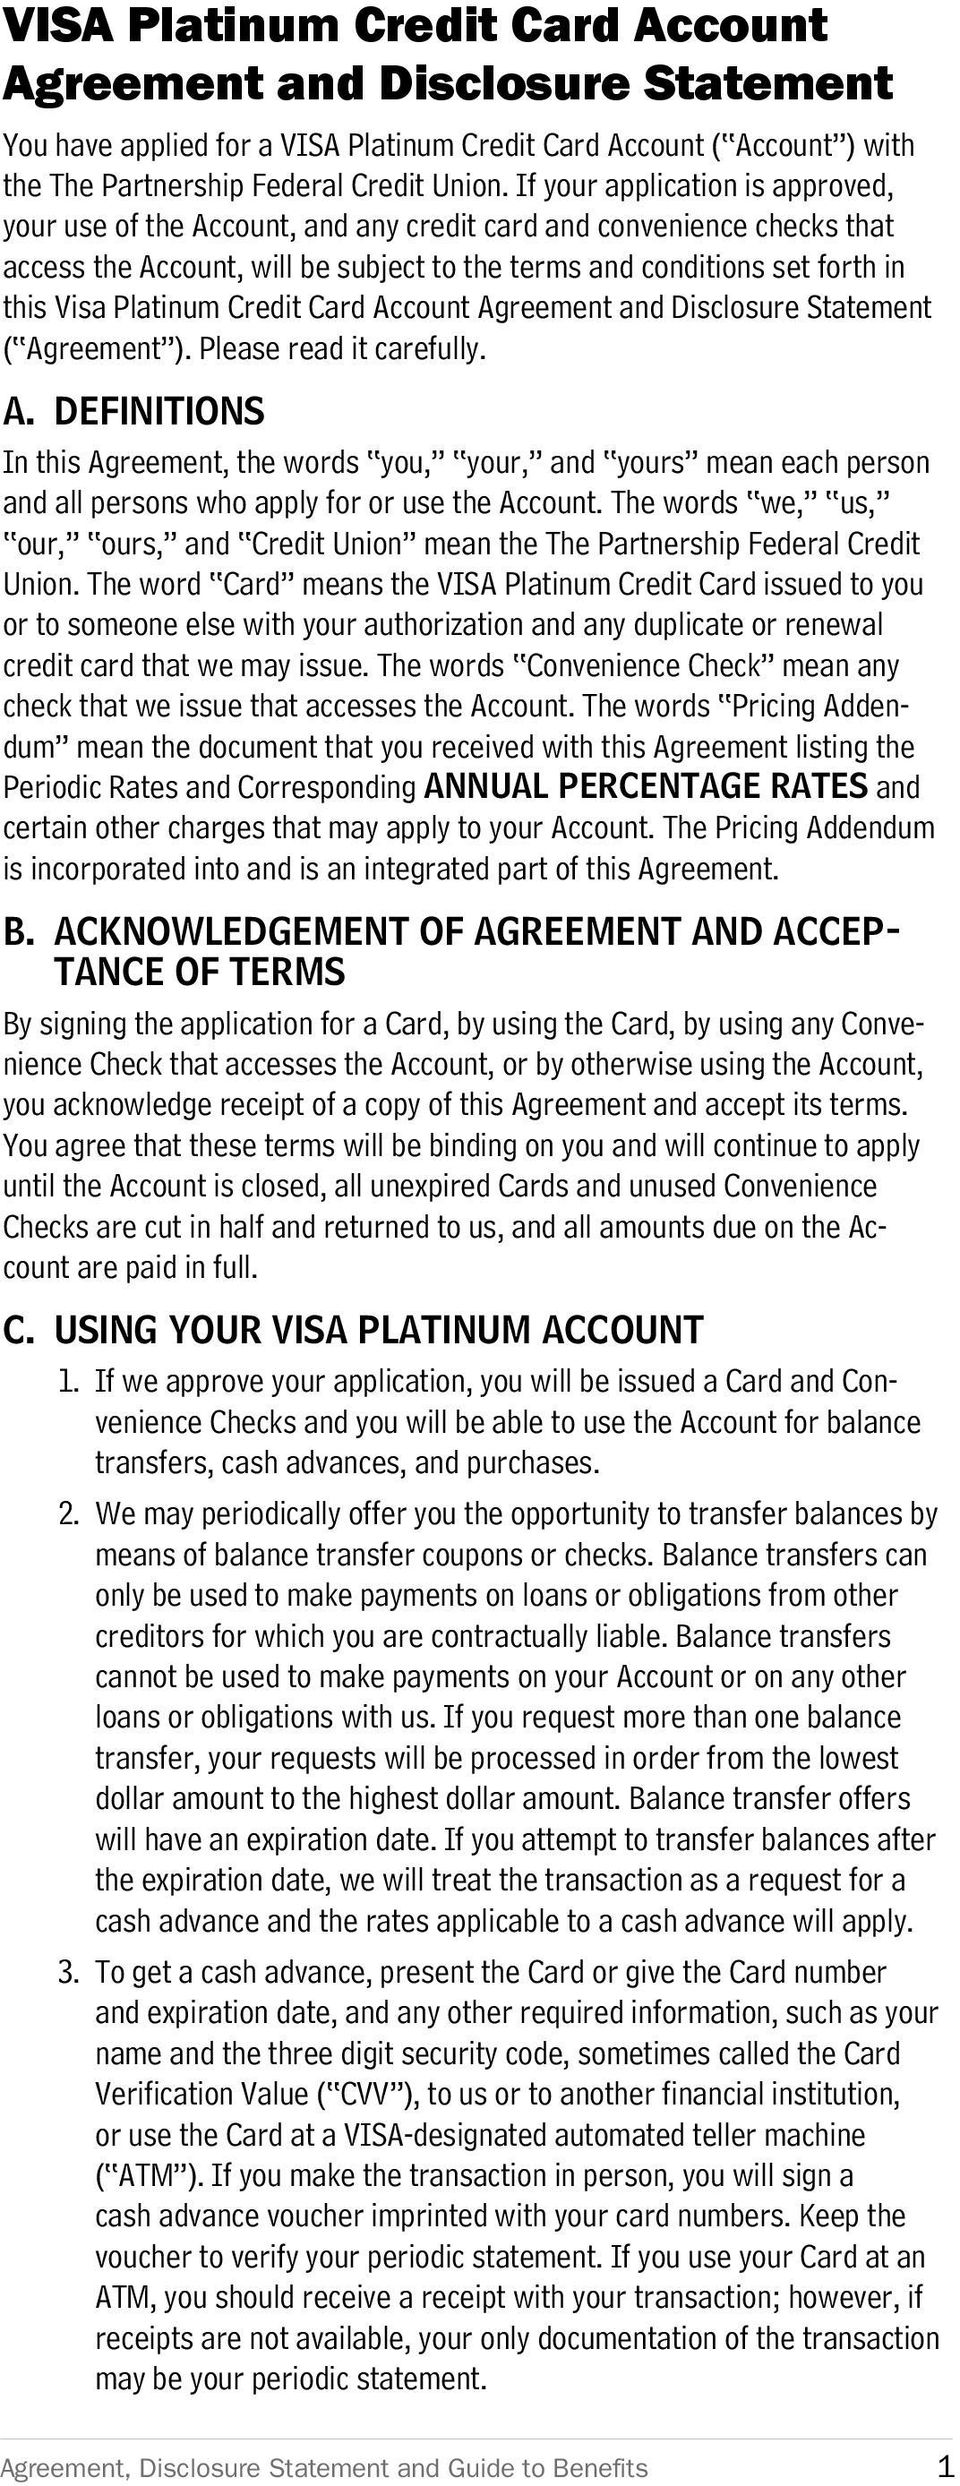 Platinum Credit Card Account Agreement and Disclosure Statement ( Agreement ). Please read it carefully. A. DEFINITIONS In this Agreement, the words you, your, and yours mean each person and all persons who apply for or use the Account.